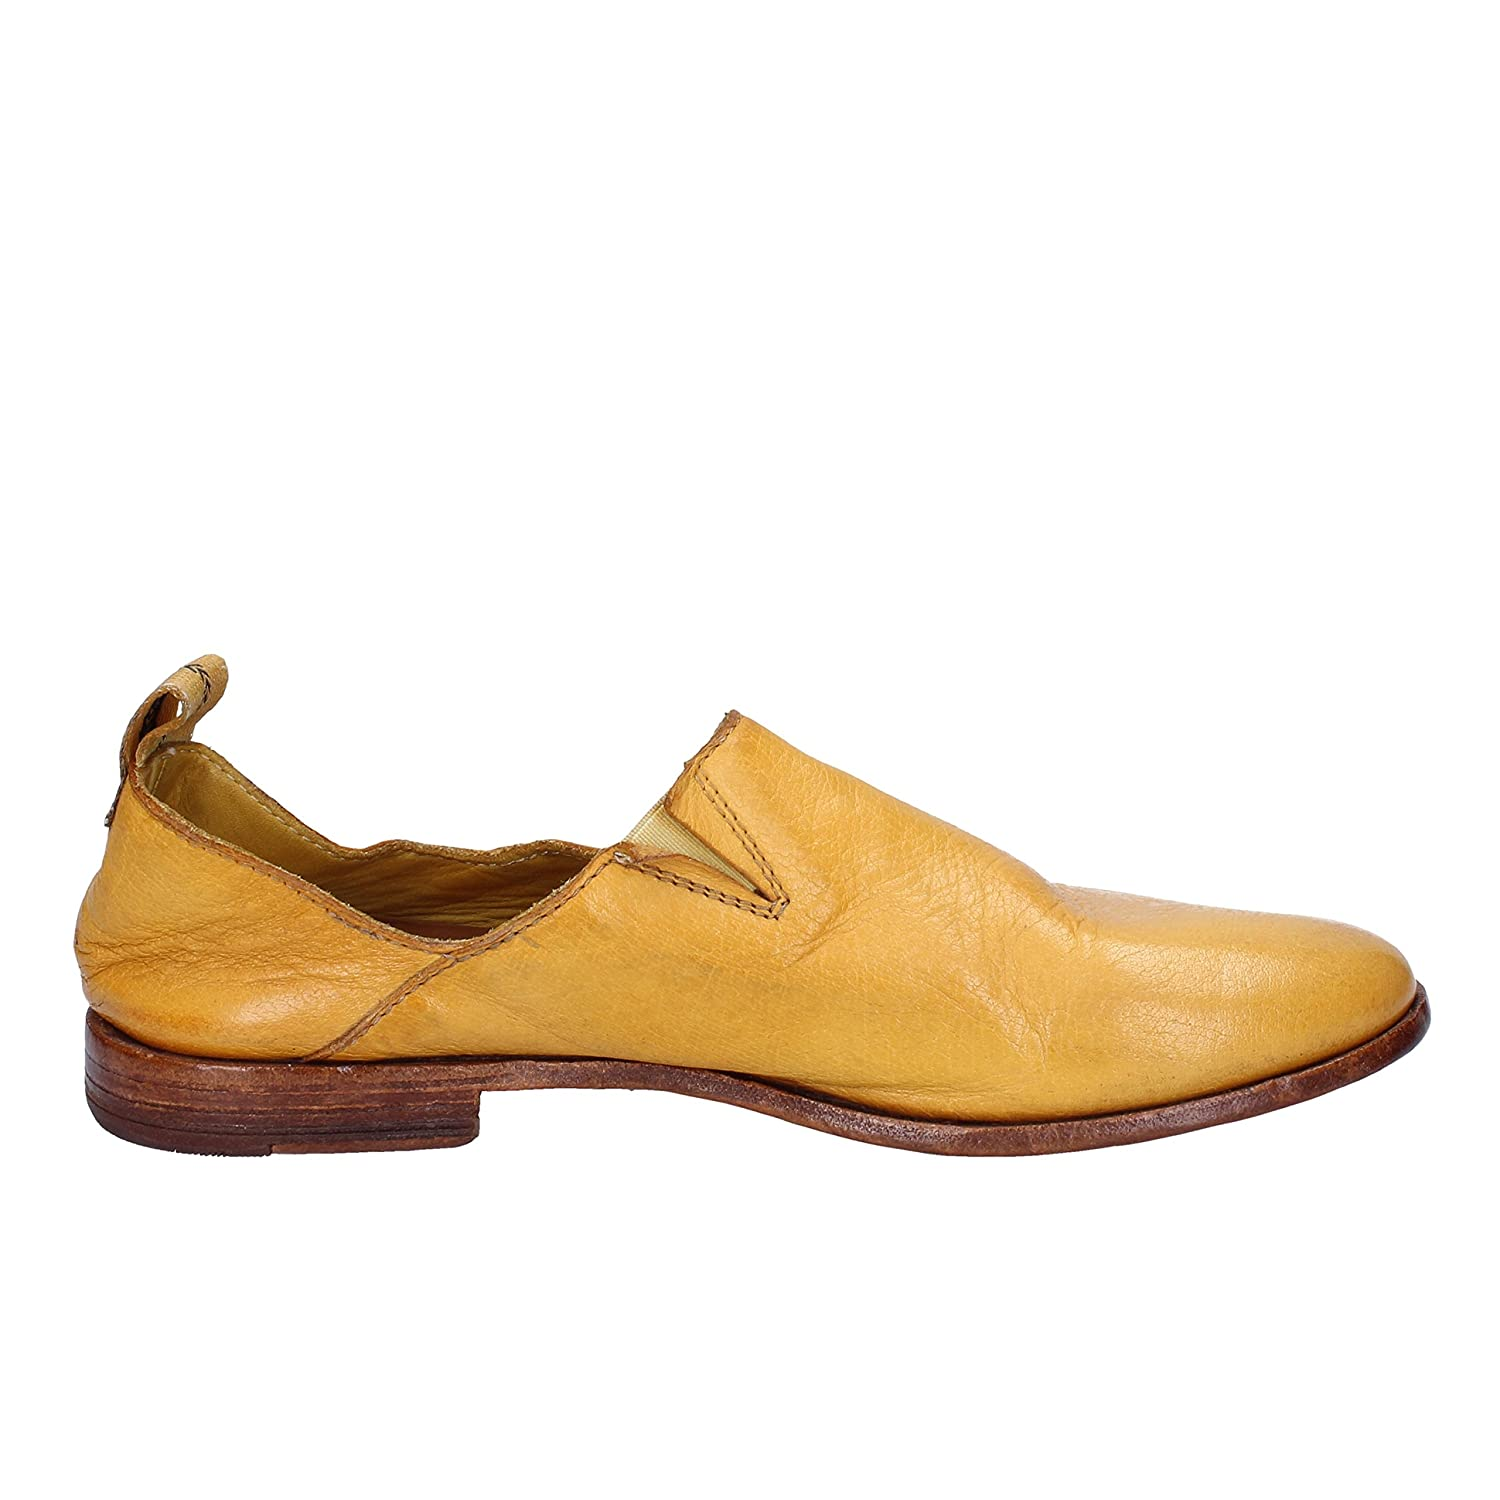 MOMA Loafers-Shoes Womens Leather Yellow